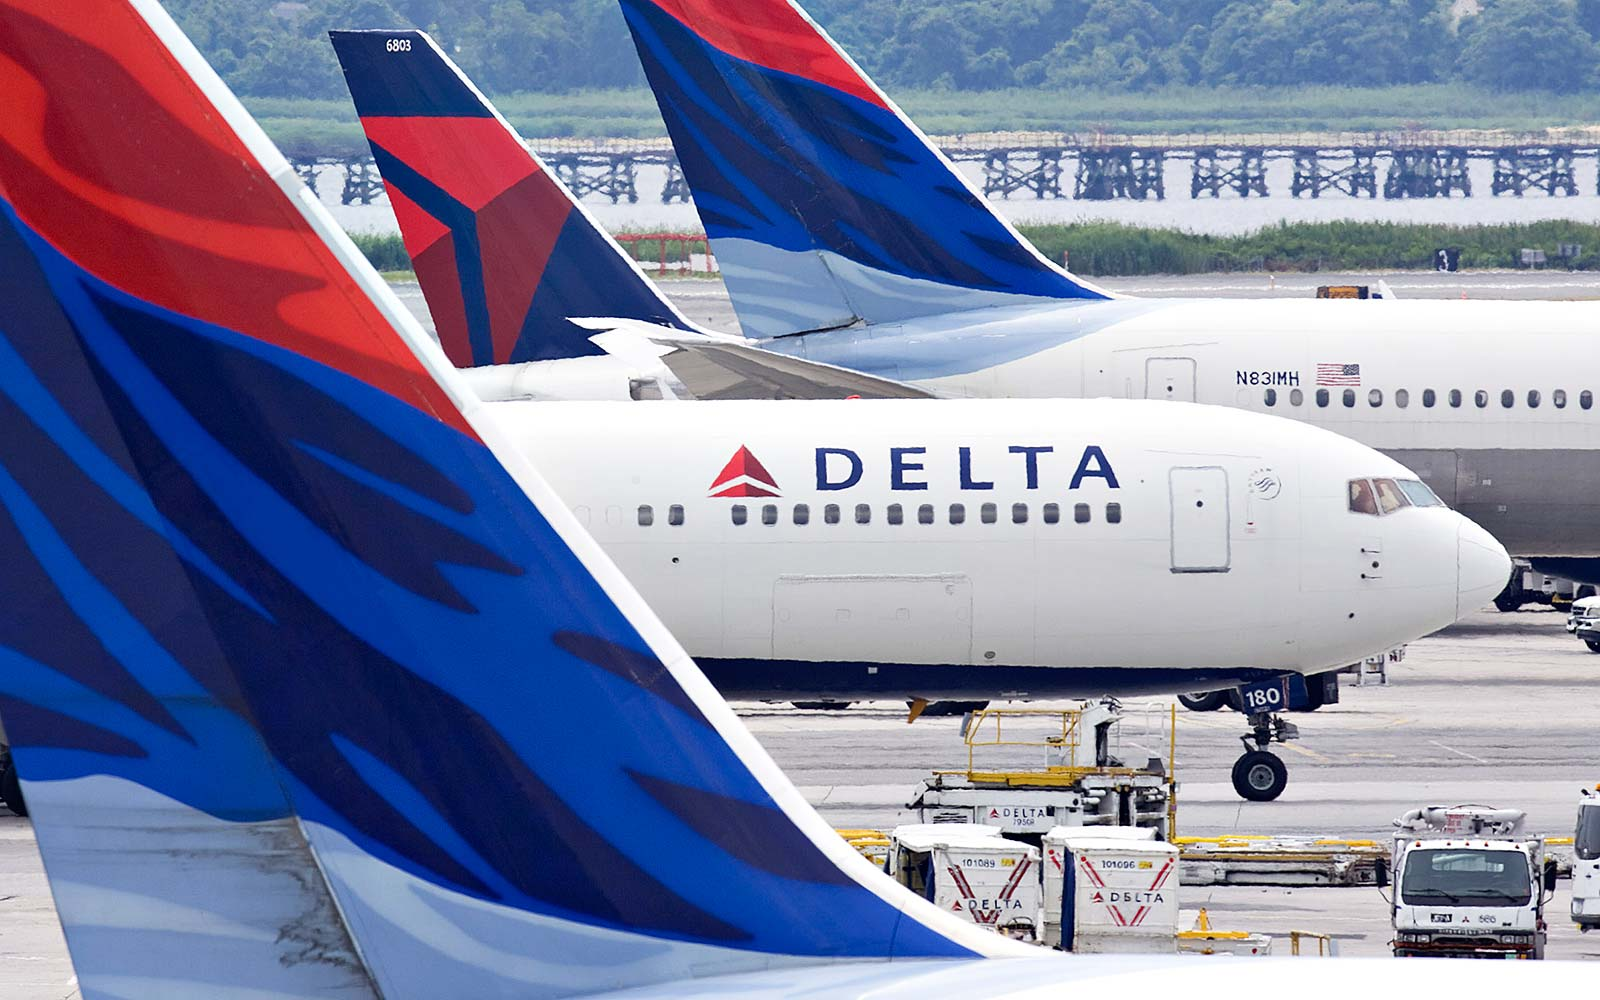 A Delta Air Lines plane taxis toward a gate between other Delta planes